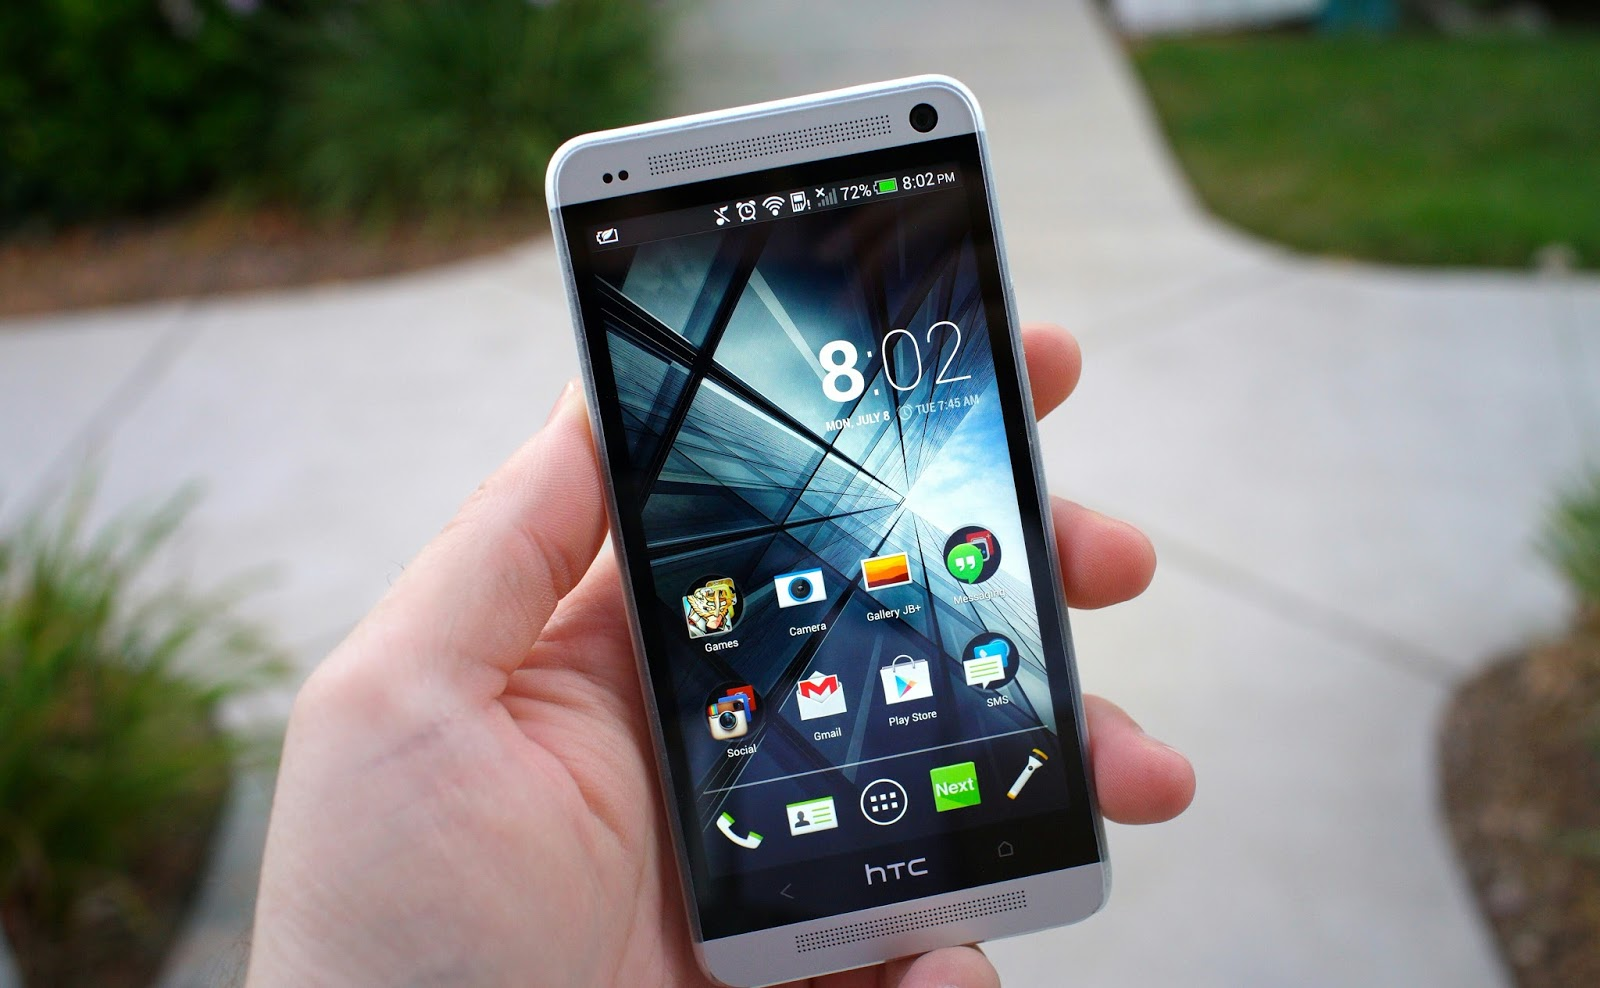 Update HTC One (M7) to Android 6.0.1 Marshmallow XOSP ROM ...